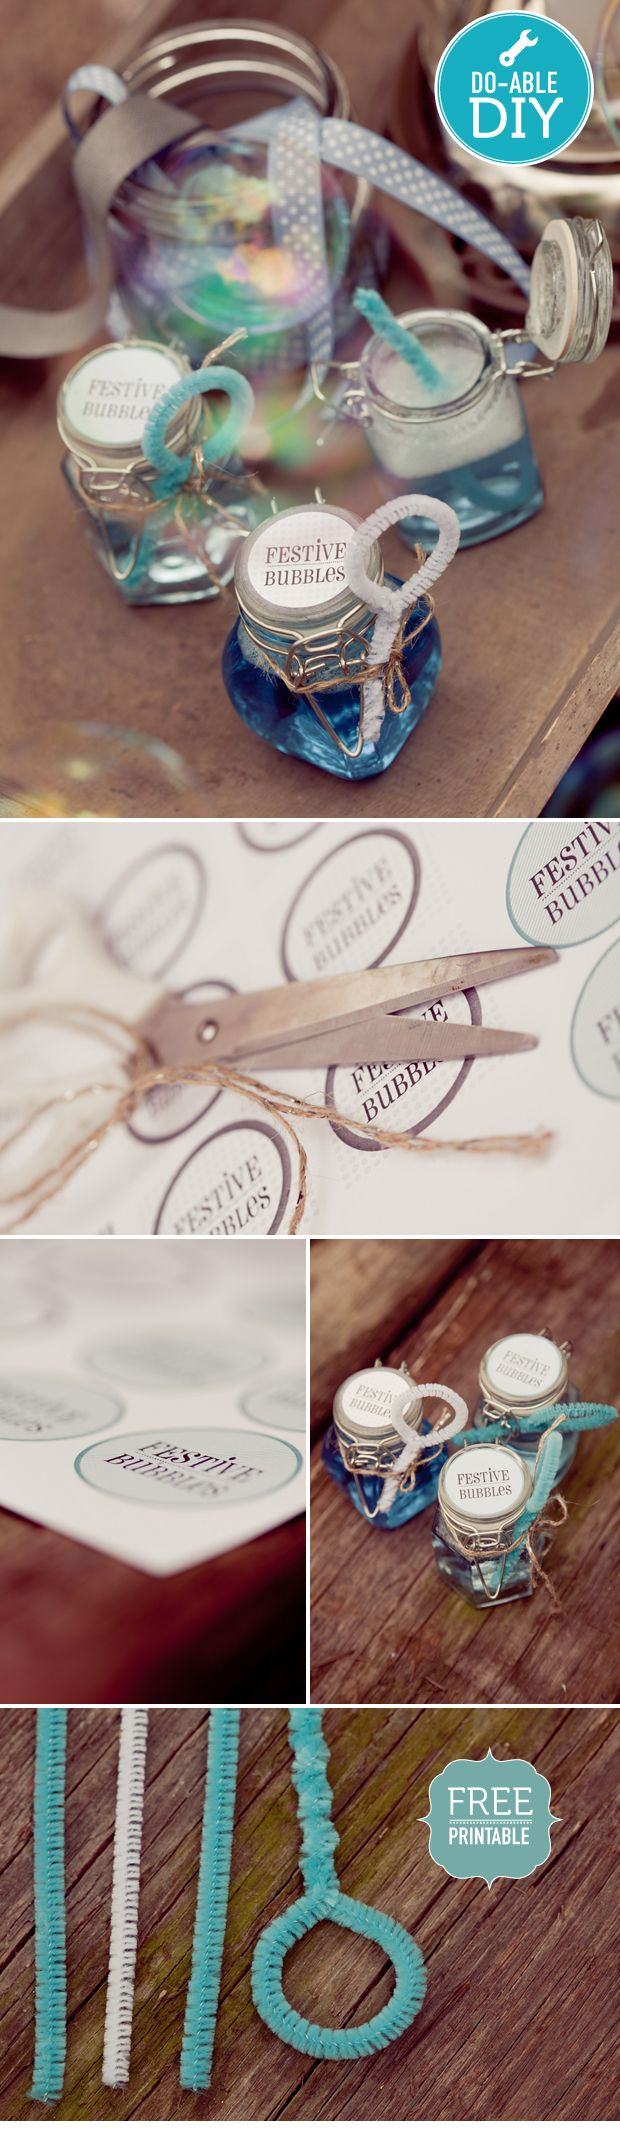 www.weddbook.com everything about wedding ♥ Creative Wedding Ideas wedding diy craft This